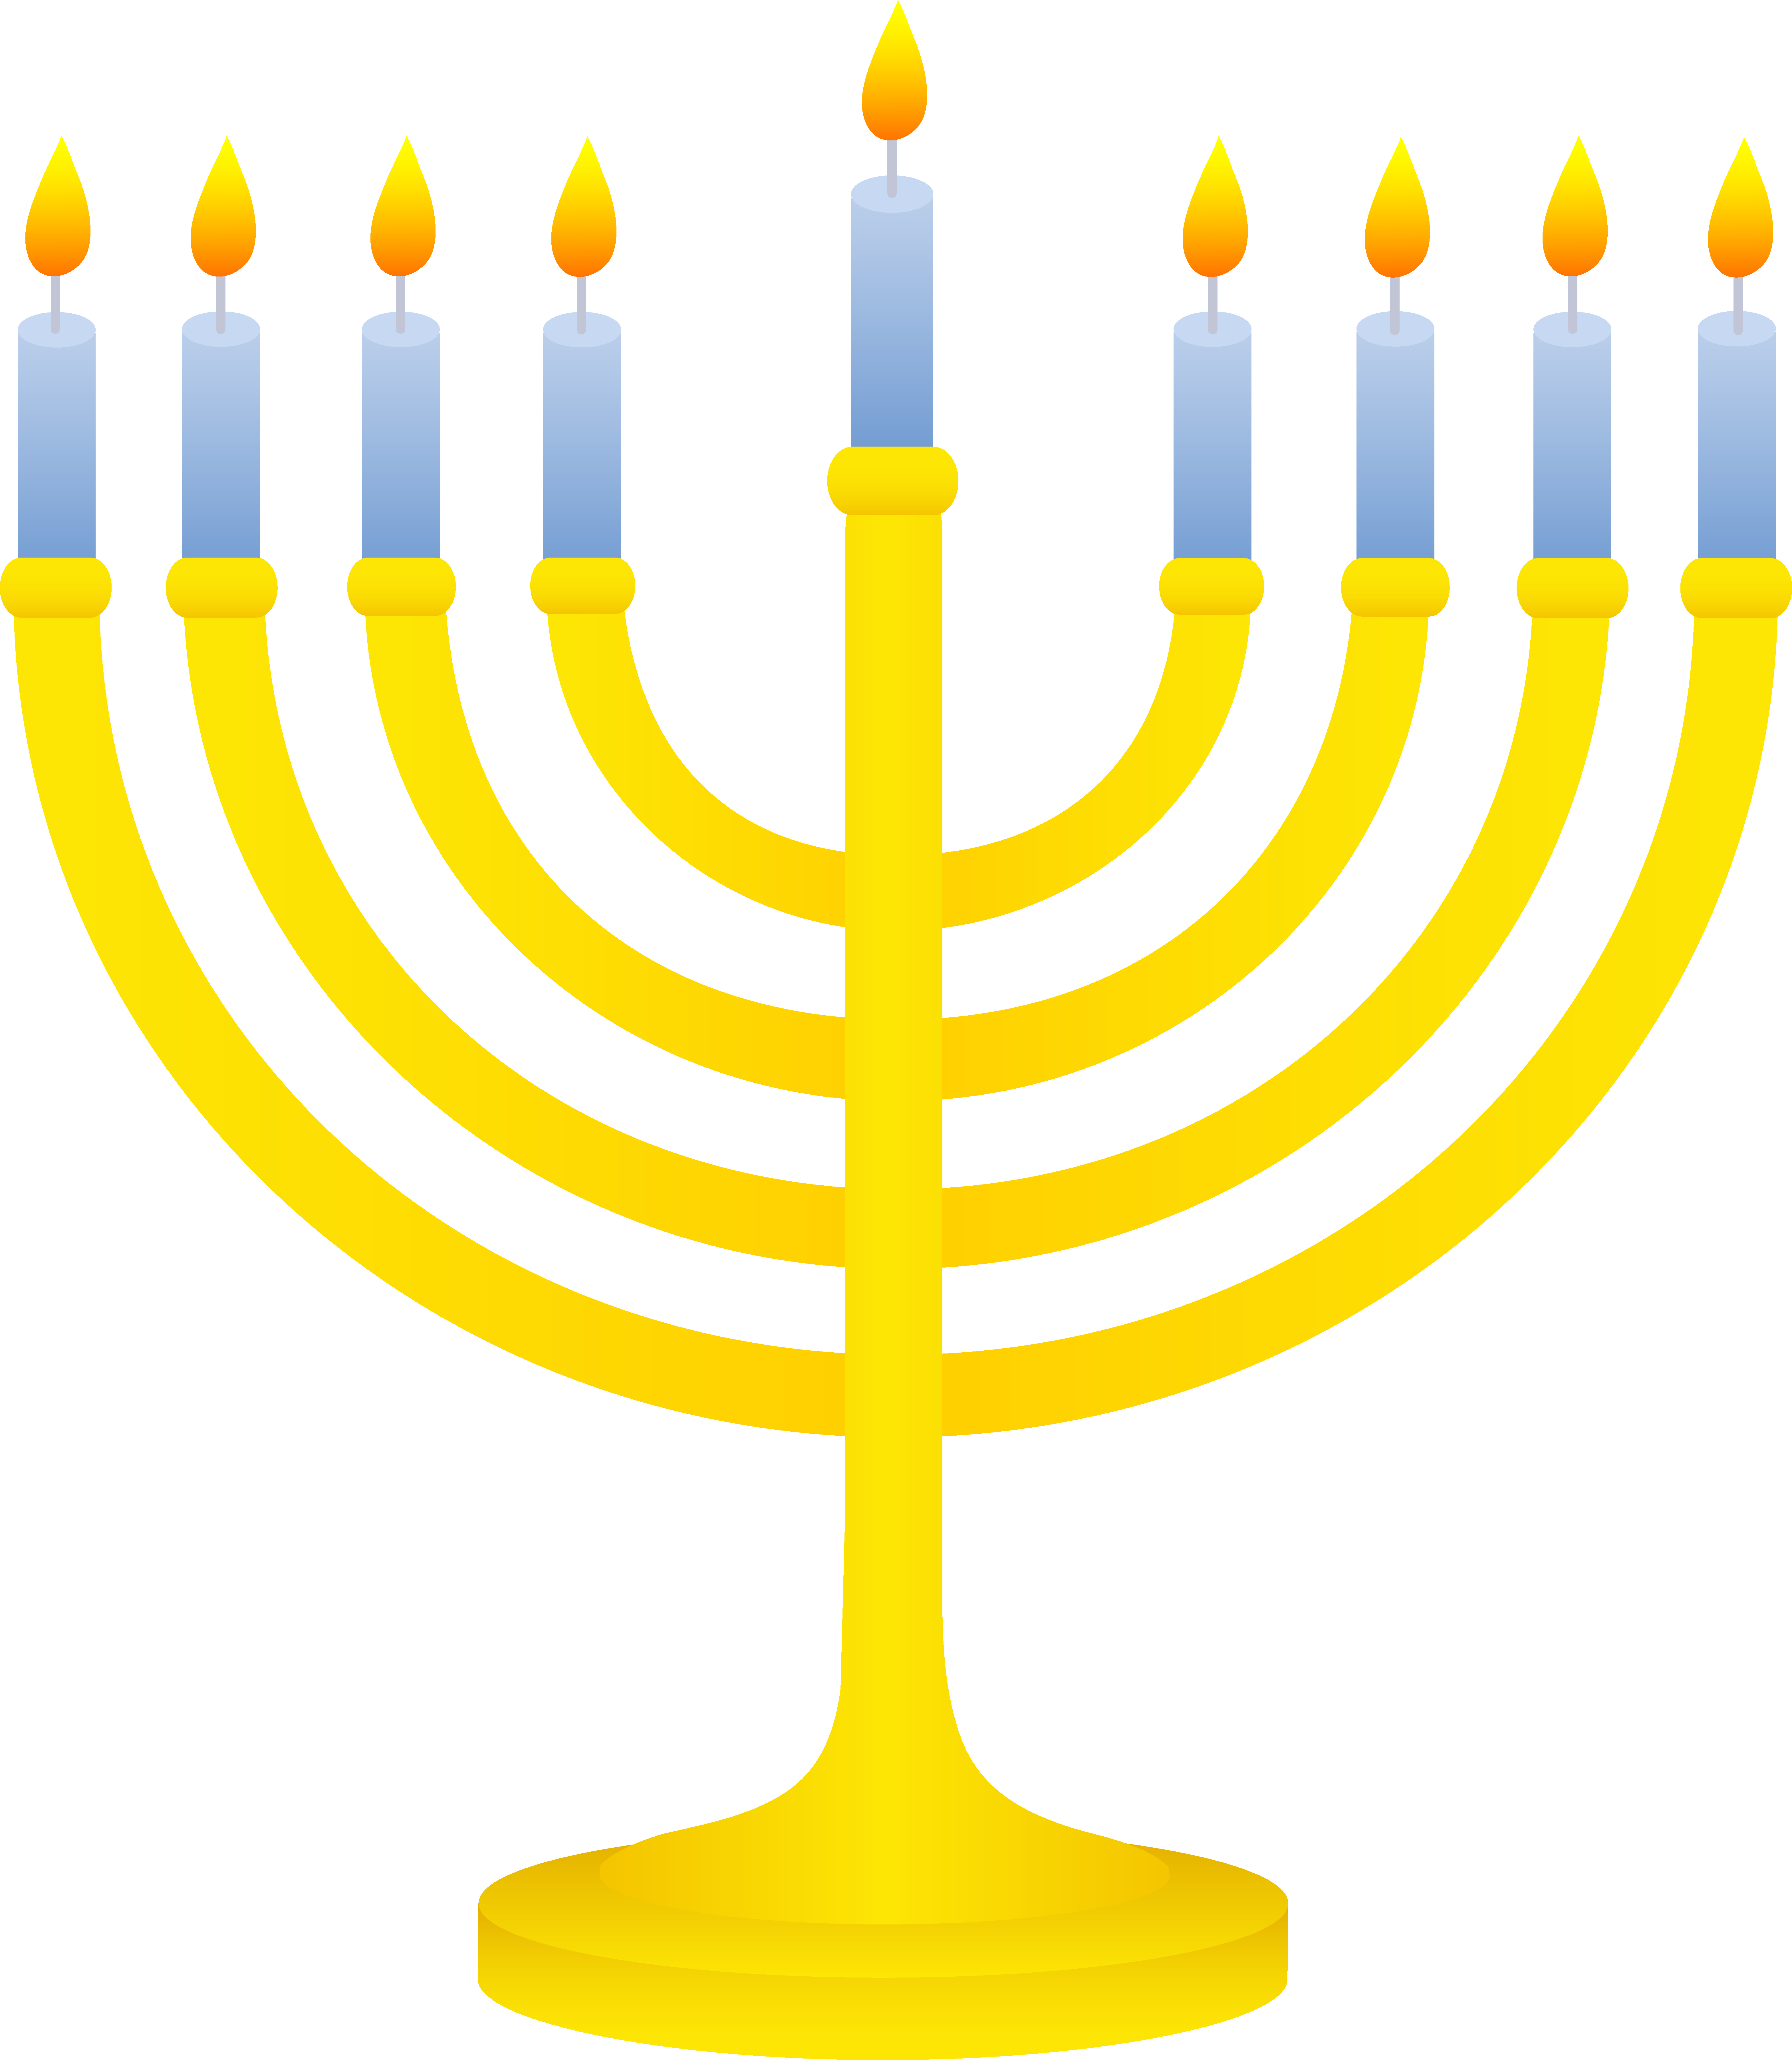 Menorah clipart traditional. Golden with lit candles